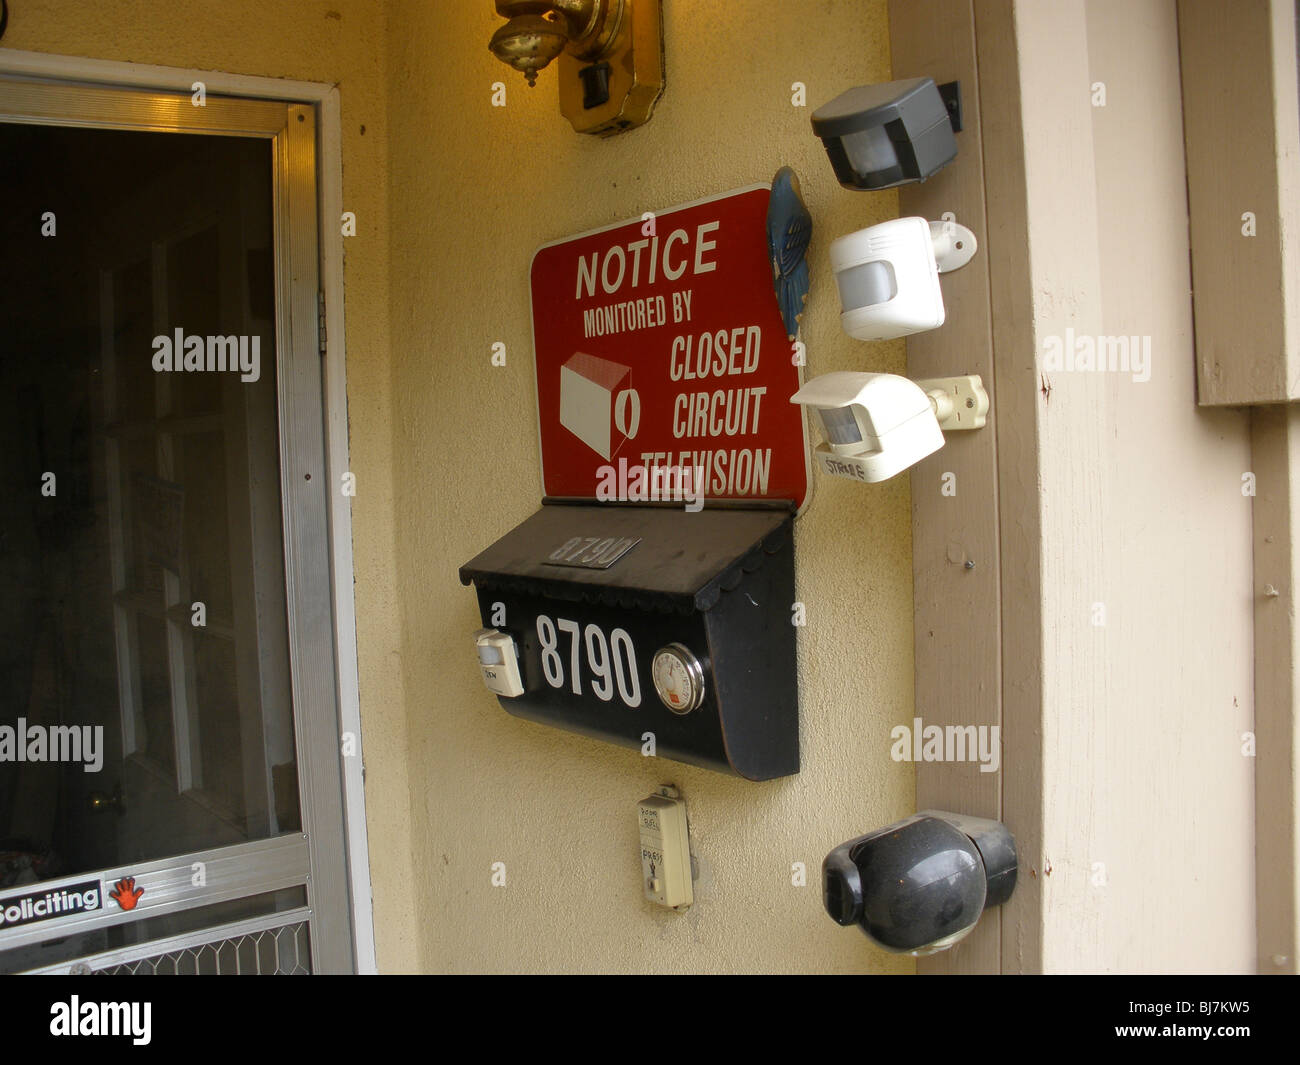 A surveillance camera at the front entrance of a home. - Stock Image